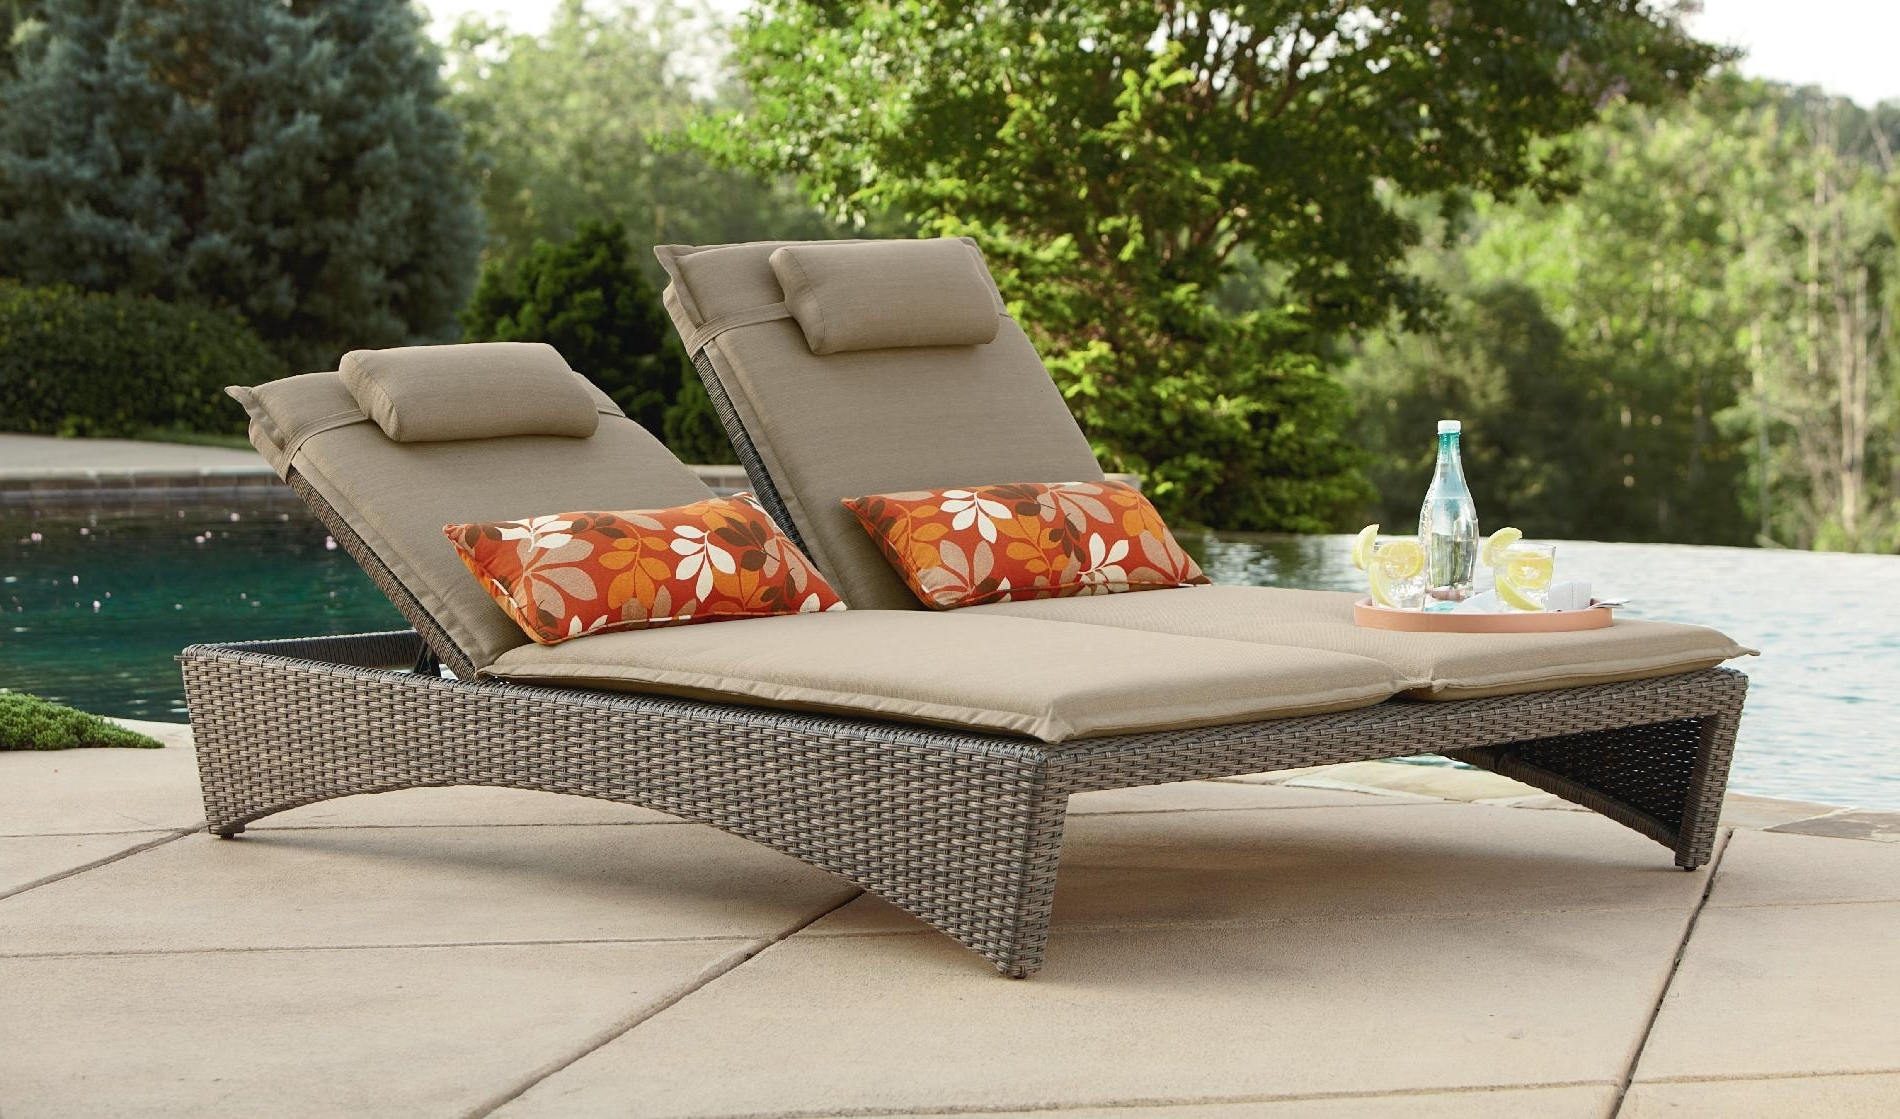 Patio Double Chaise Lounges Intended For Favorite Picture 3 Of 35 – Walmart Patio Lounge Chairs Luxury Patio (View 12 of 15)